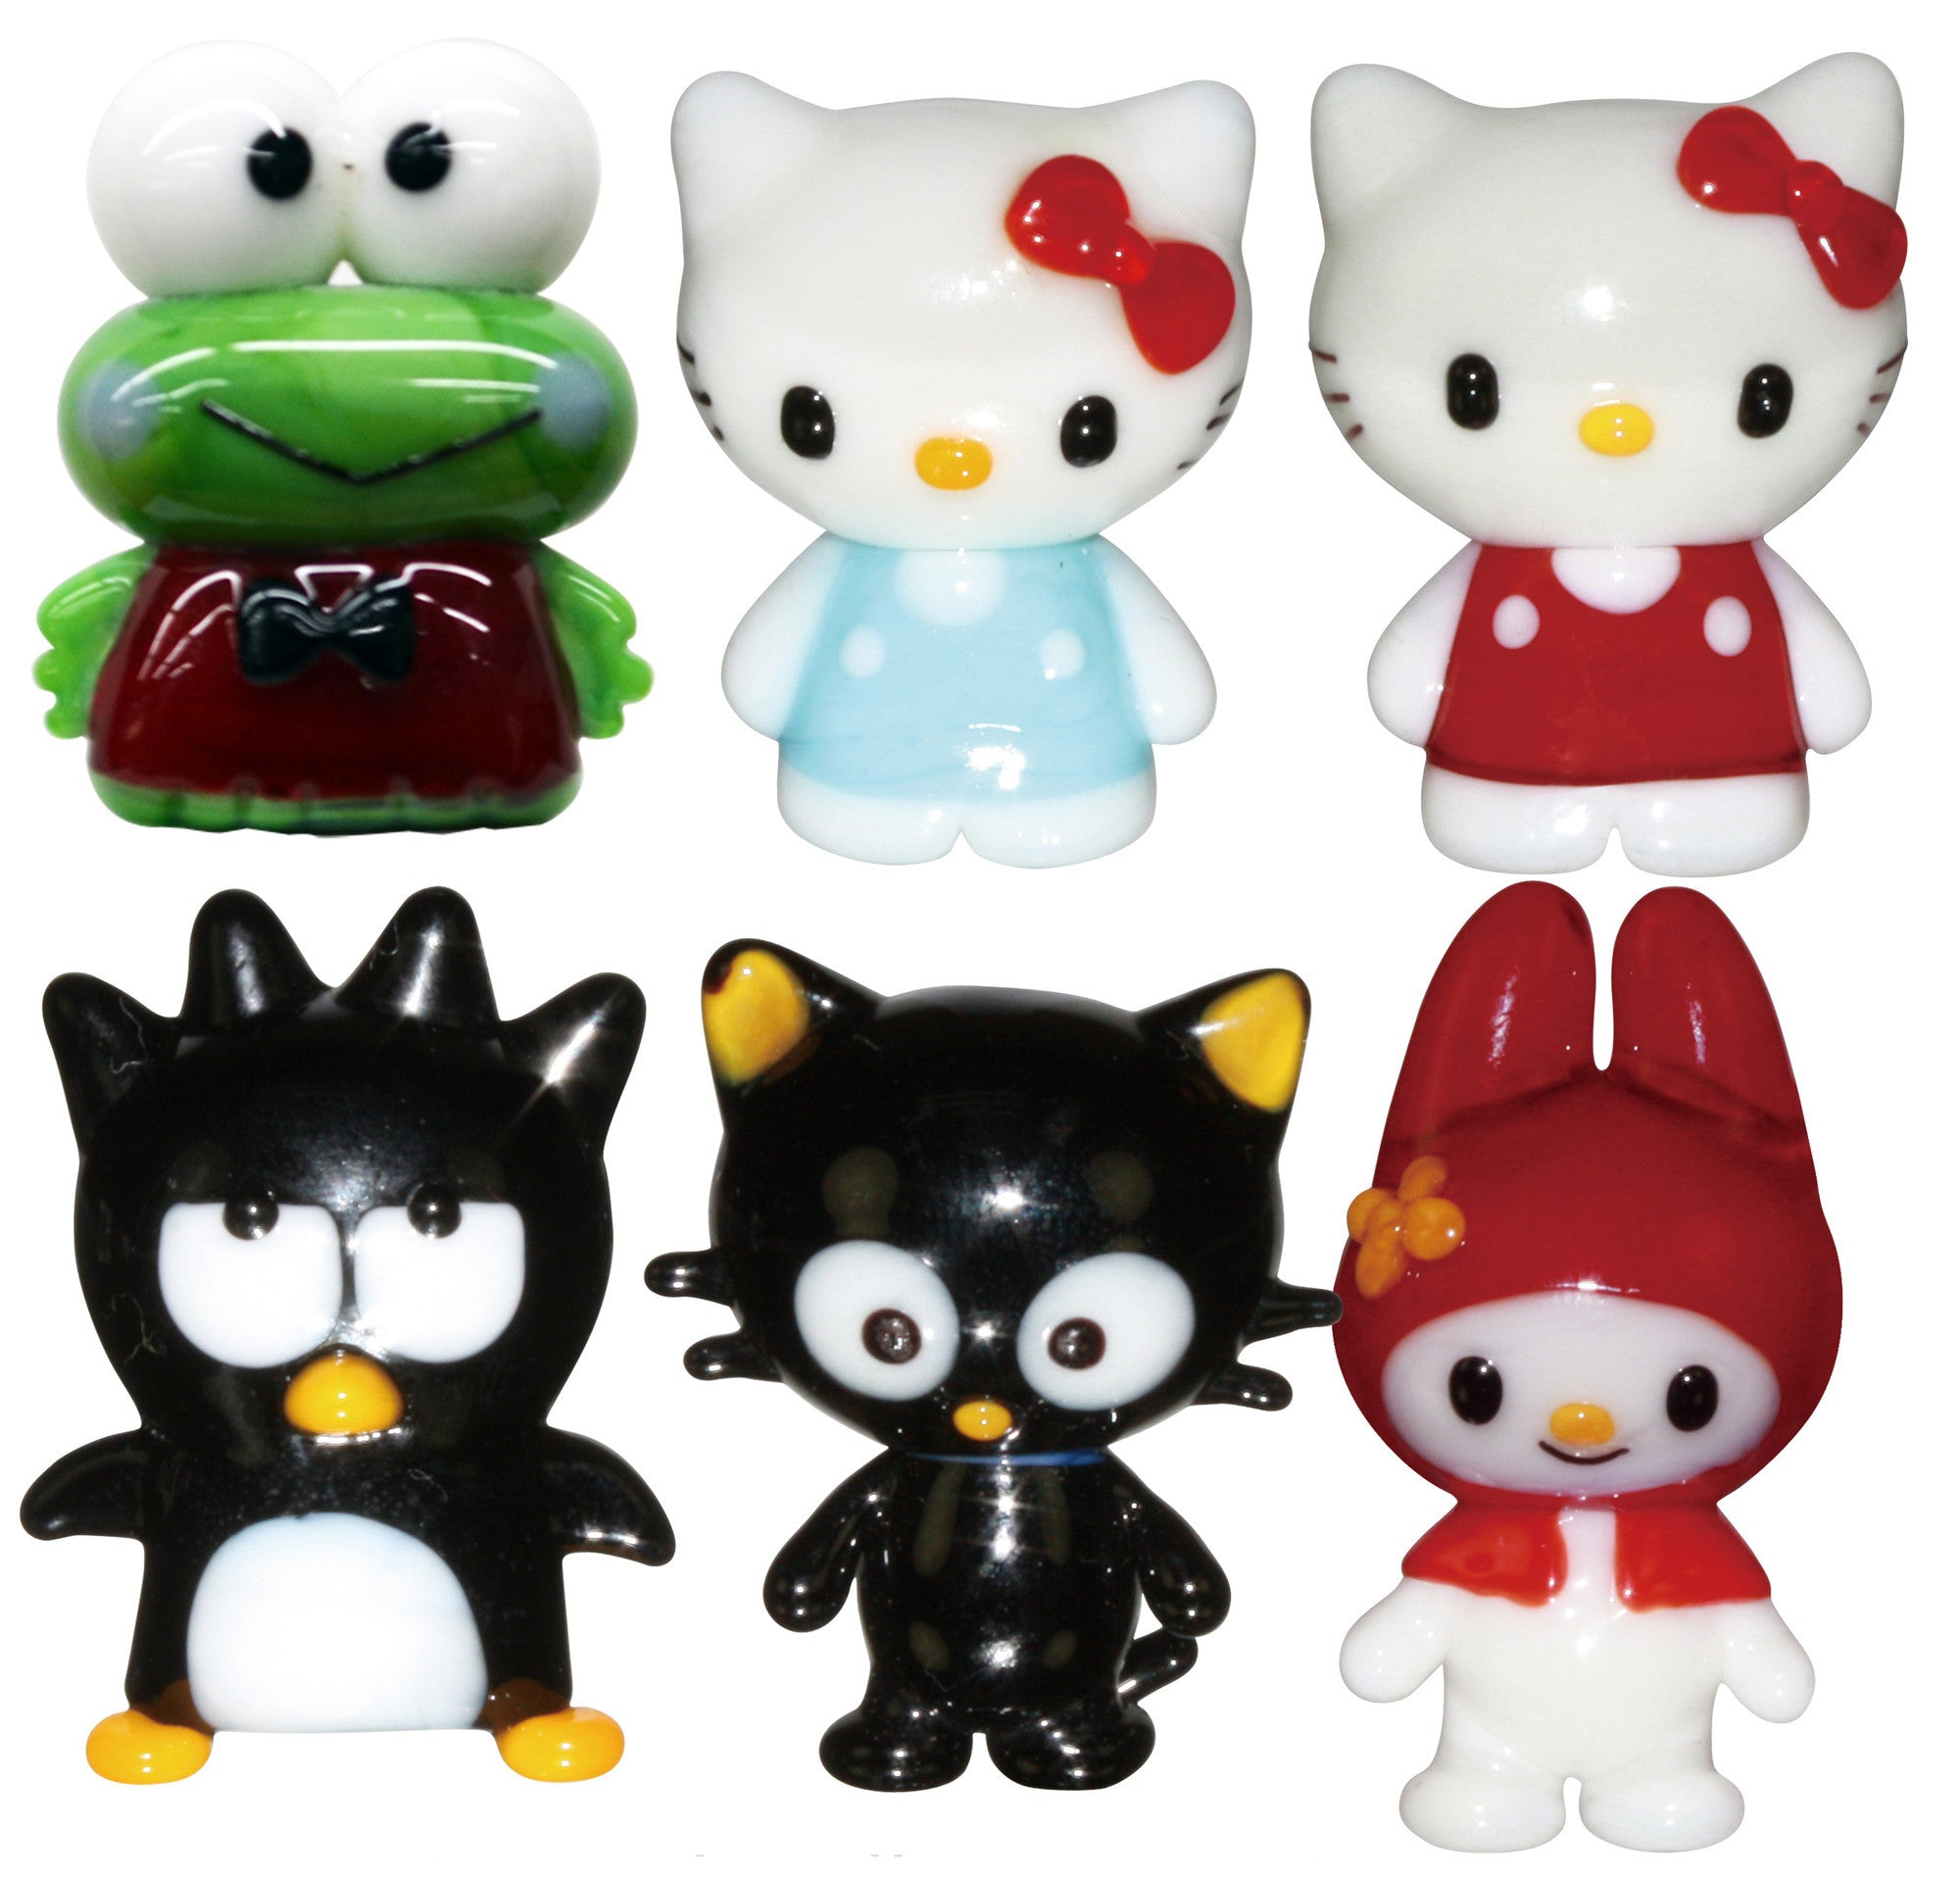 Looking Glass Torch - Hello Kitty Character Assortment 6 Different Miniatures - (6-Pack) - Off The Wall Toys and Gifts